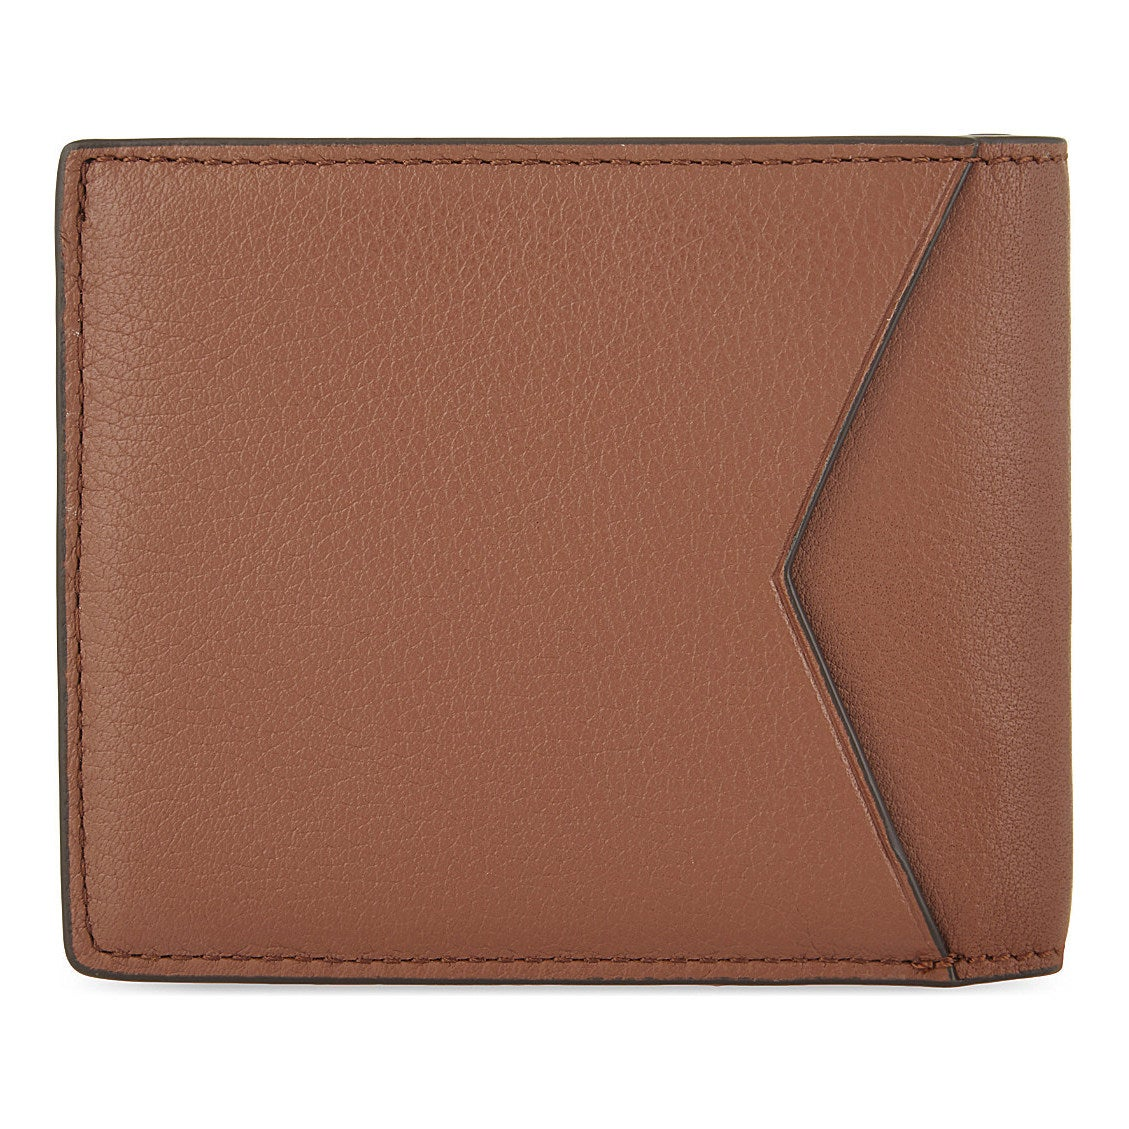 80d39290e1ba Shop Michael Kors Men's Bryant Luggage Brown Leather Billfold/Wallet - Free  Shipping Today - Overstock - 13839505